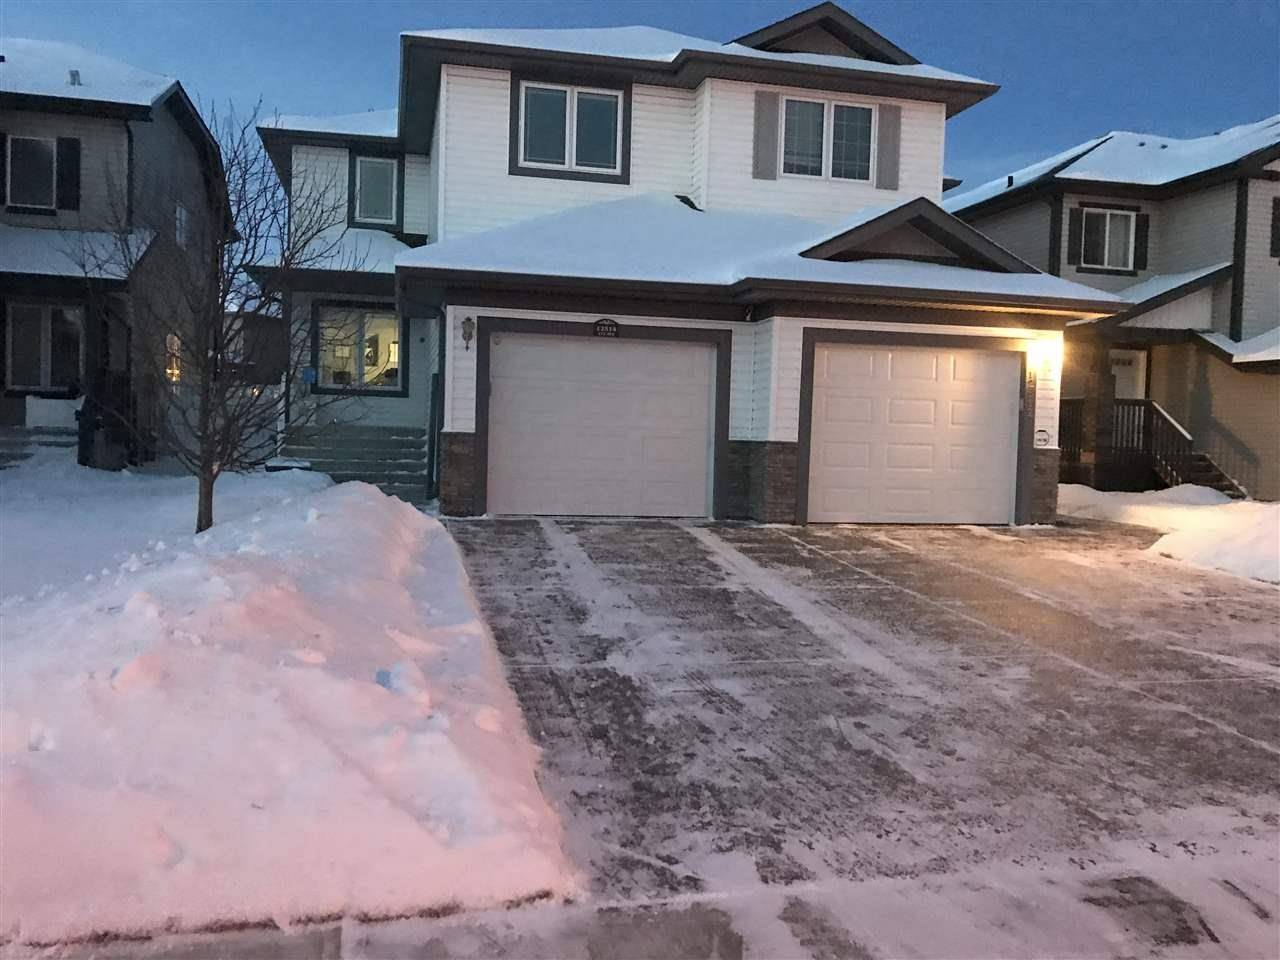 Townhouse for sale at 12514 172 Ave Nw Edmonton Alberta - MLS: E4183755